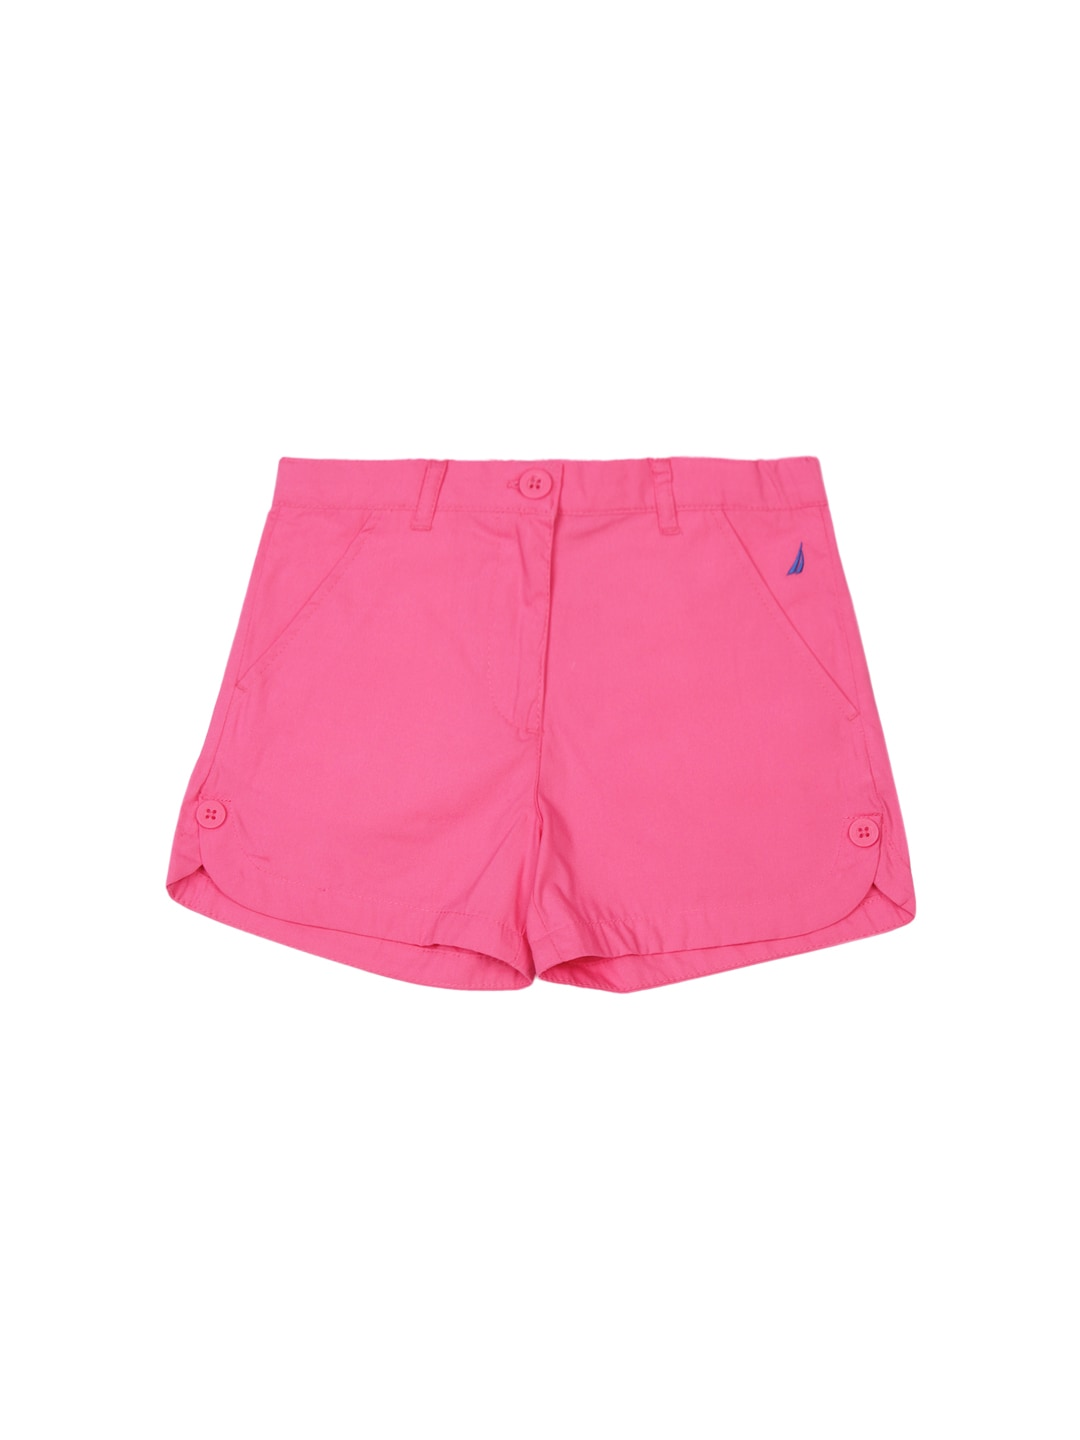 Nautica Girls Pink Shorts